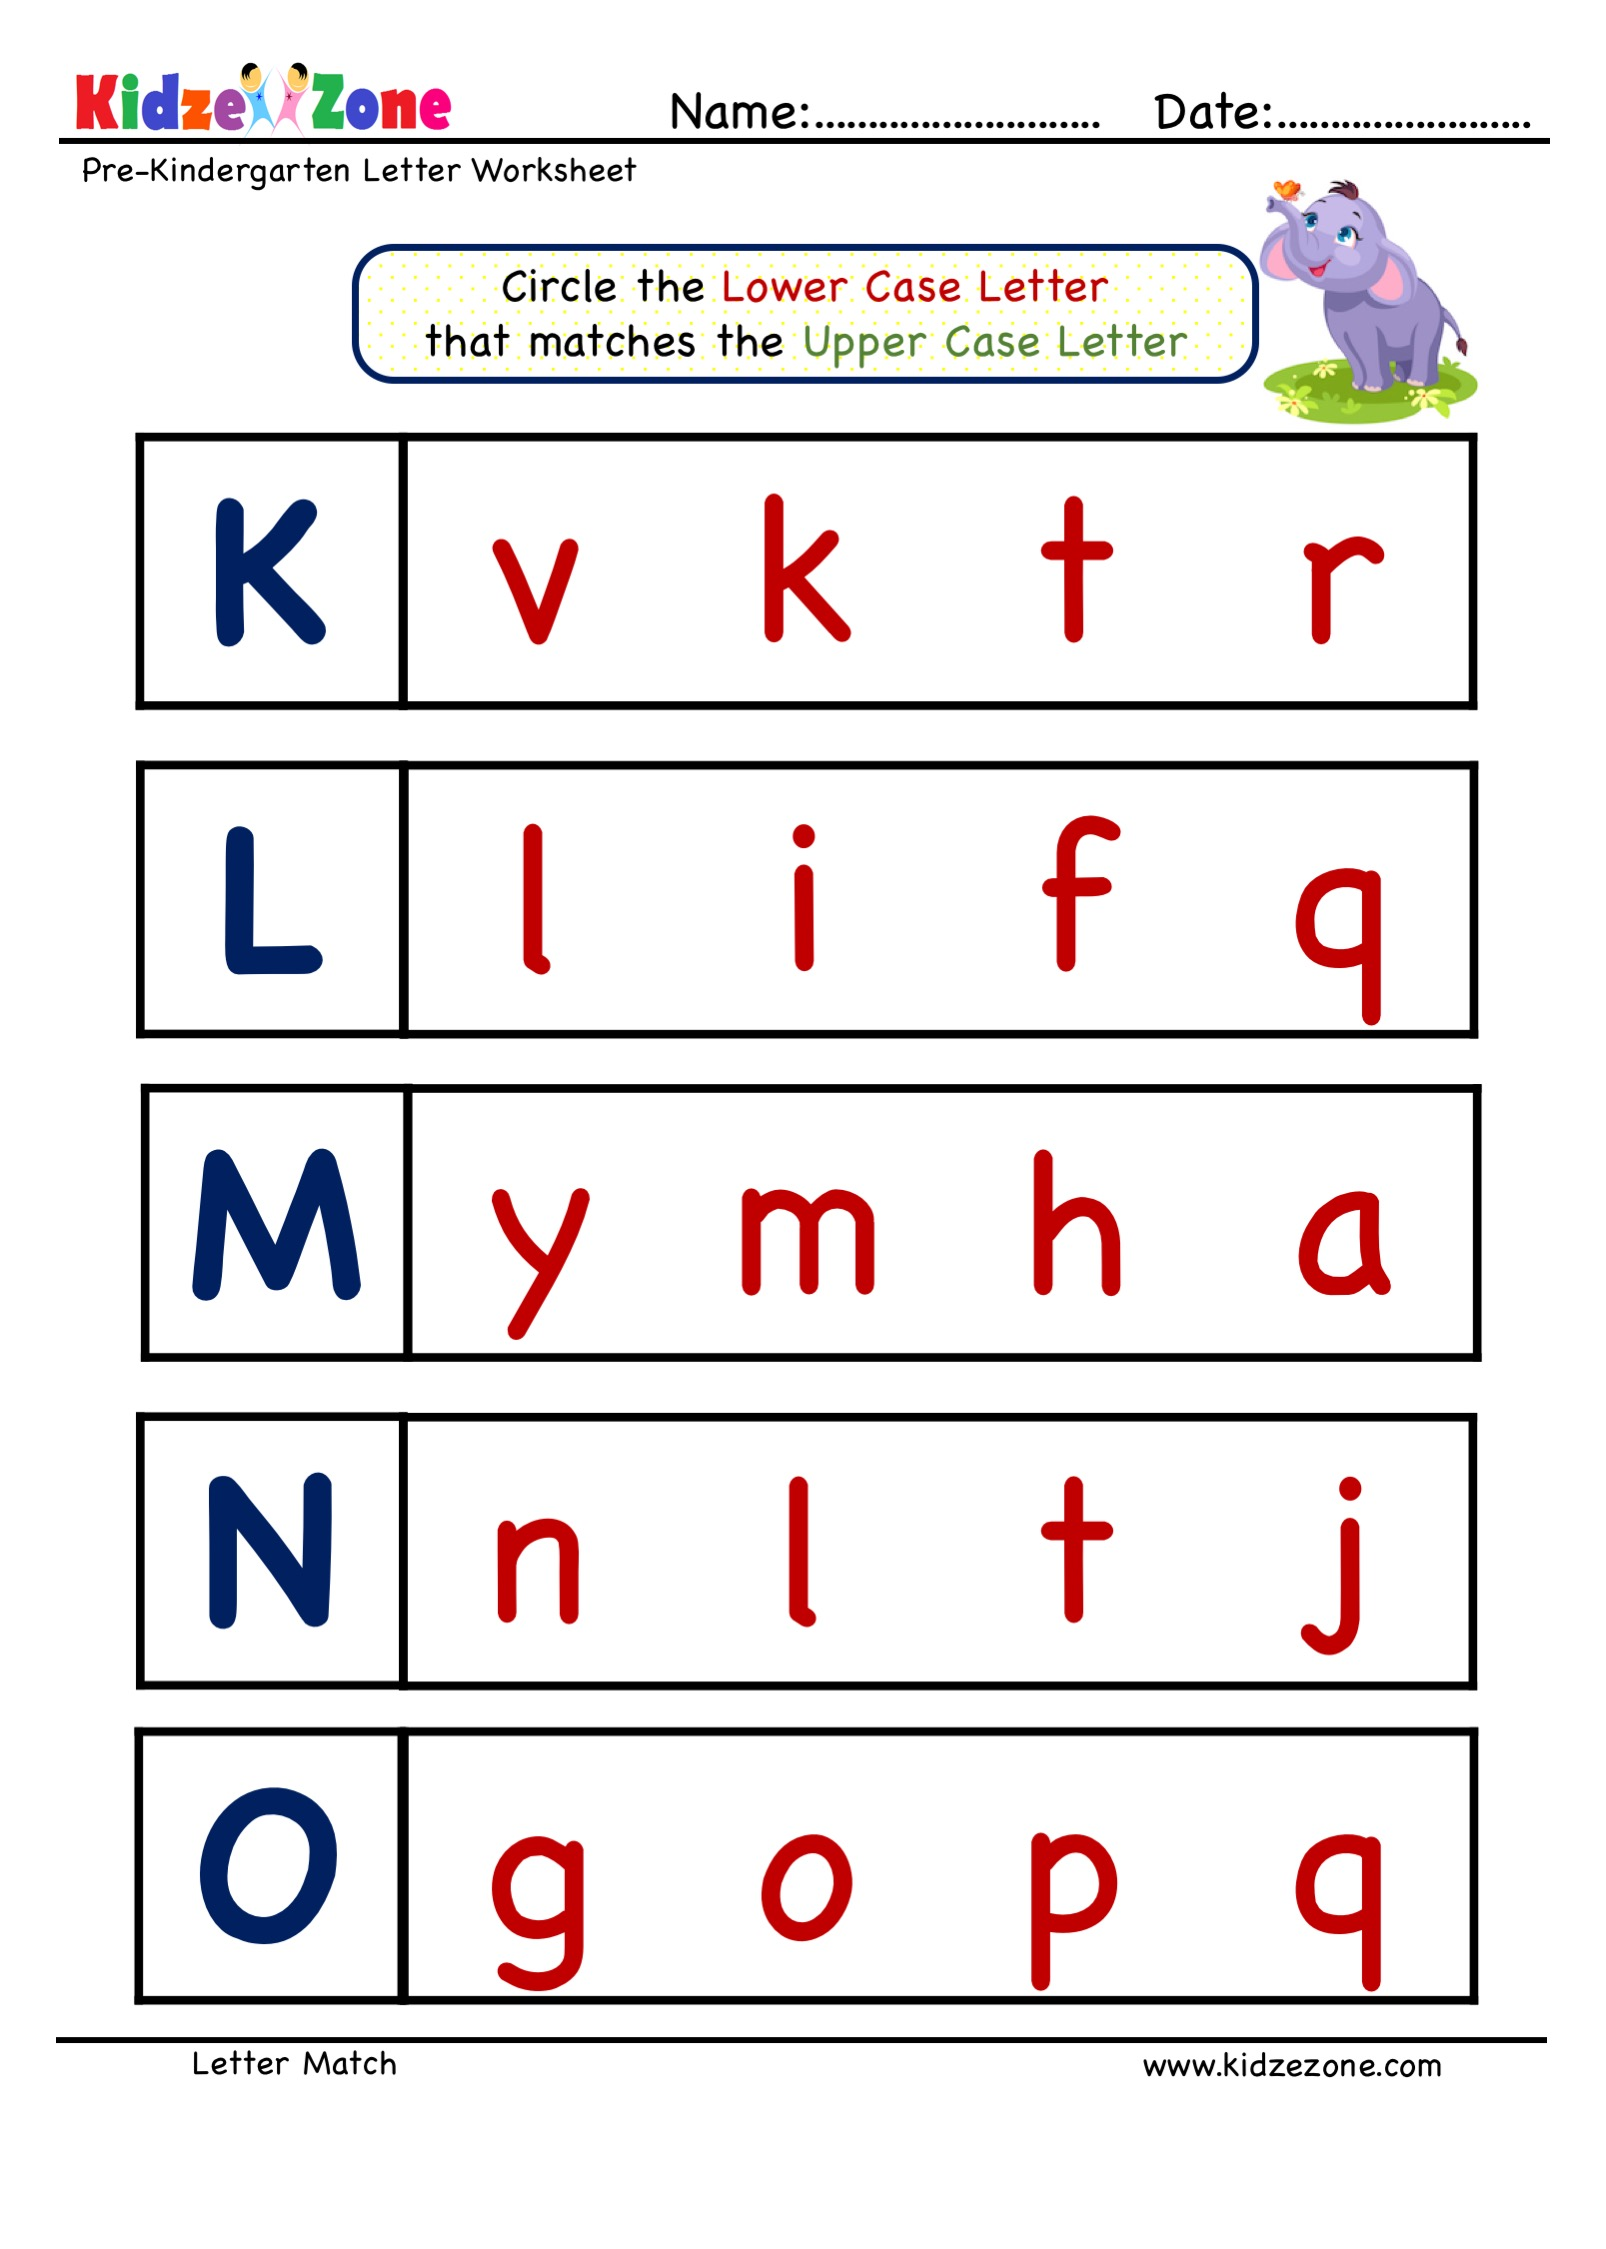 Preschool Letter Matching Upper Case To Lower Case Worksheet 2